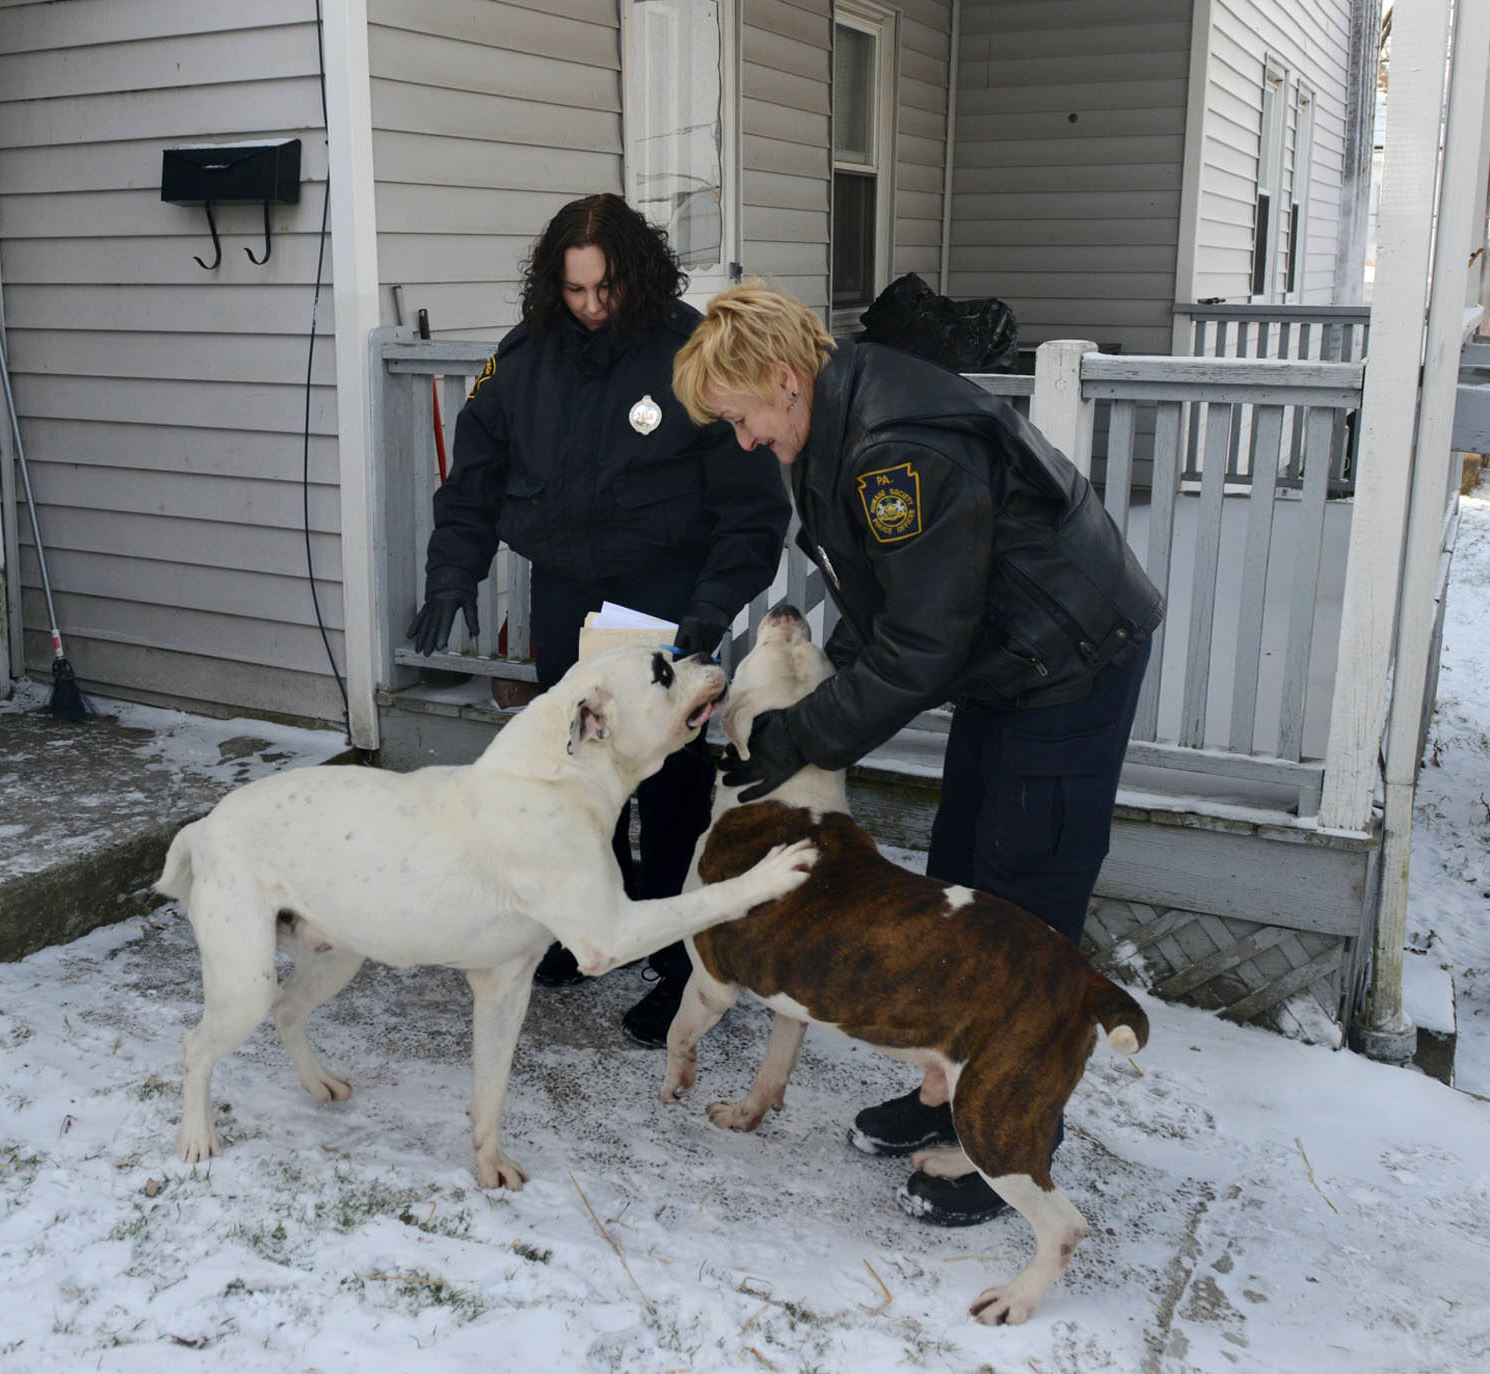 Checking on dogs Pittsburgh police officer Christine Luffey, left, and Humane Society officer Kathy Hecker play with two pit bulls while checking on dogs during the frigid days earlier this week.